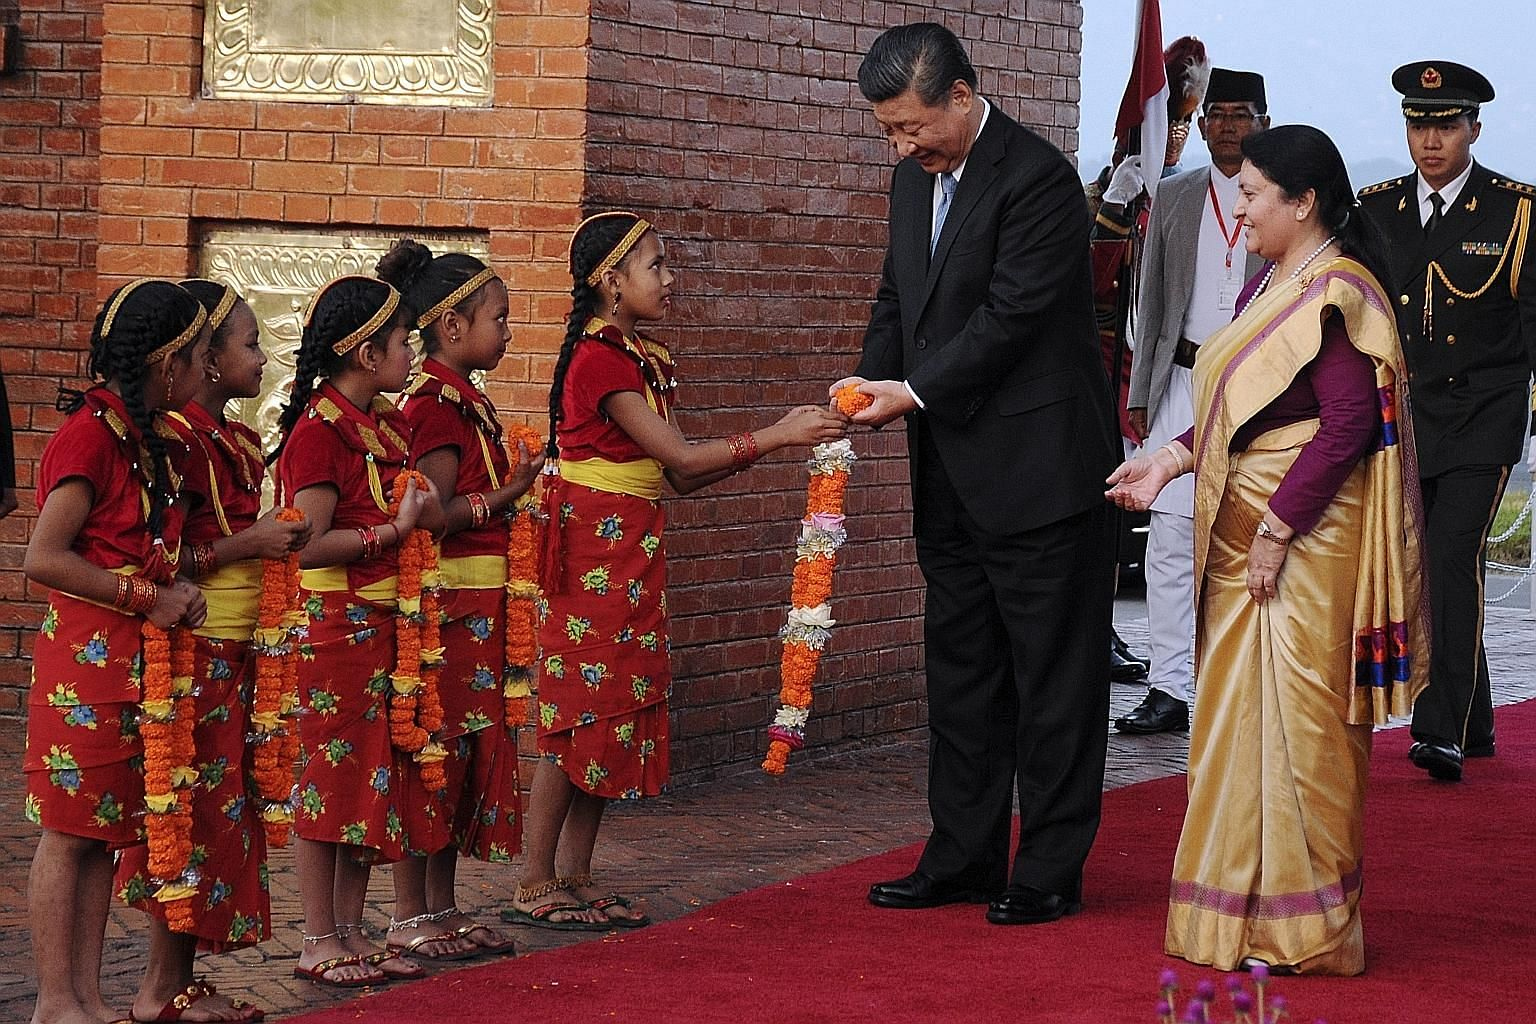 Chinese President Xi Jinping receiving garlands as he was accompanied by Nepal's President Bidya Devi Bhandari during a welcome ceremony at Tribhuvan International Airport in Kathmandu on Saturday. Mr Xi, the first Chinese President to visit in more